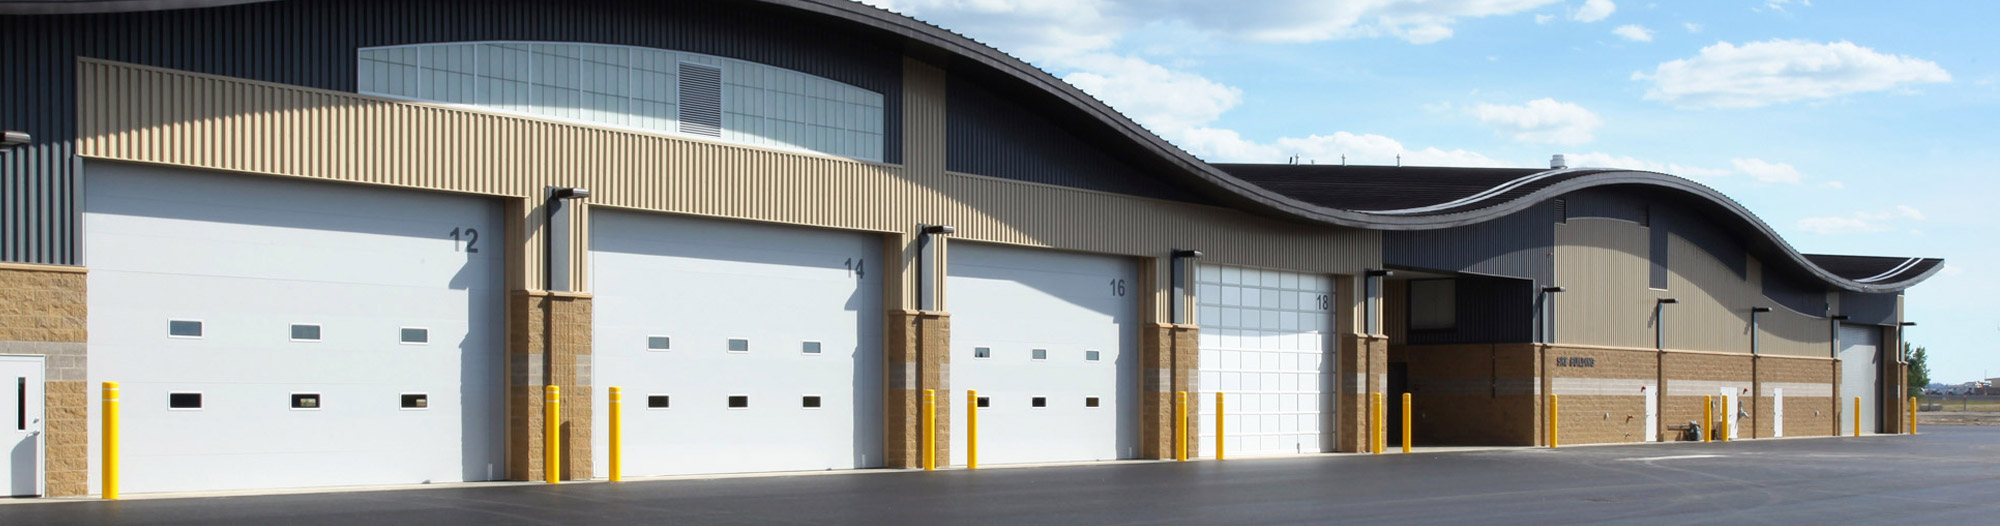 Overhead Door overhead door of washington dc photos : Commercial Garage Doors | Industrial Overhead Door Installation